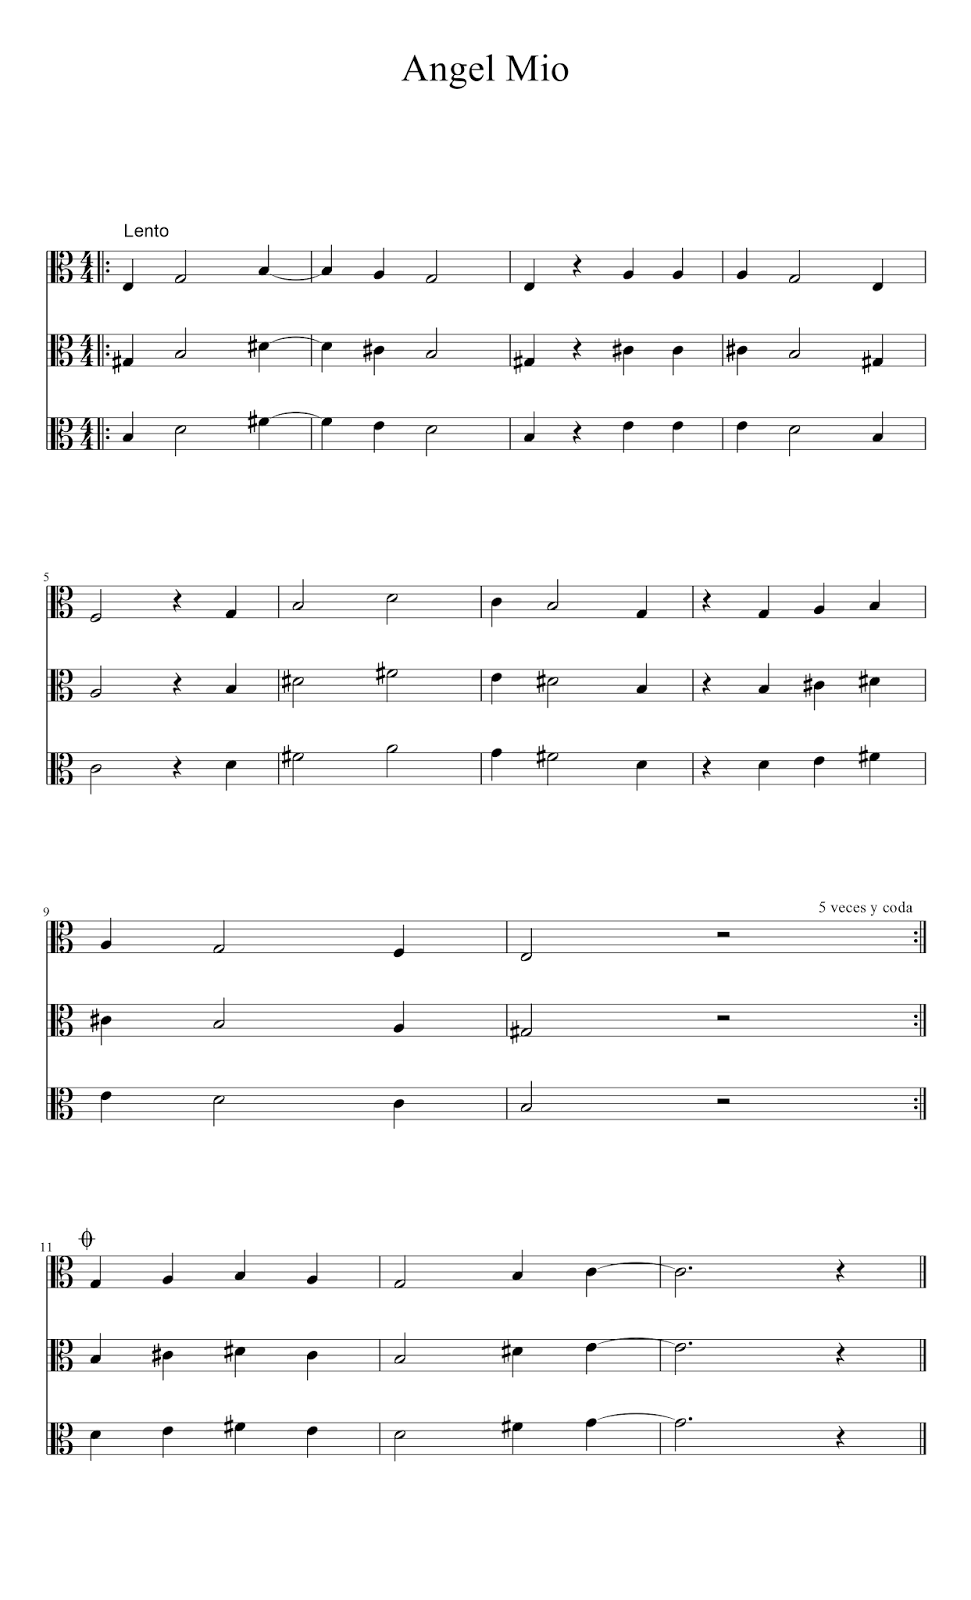 Partitura de Angel mio En Clave de Do